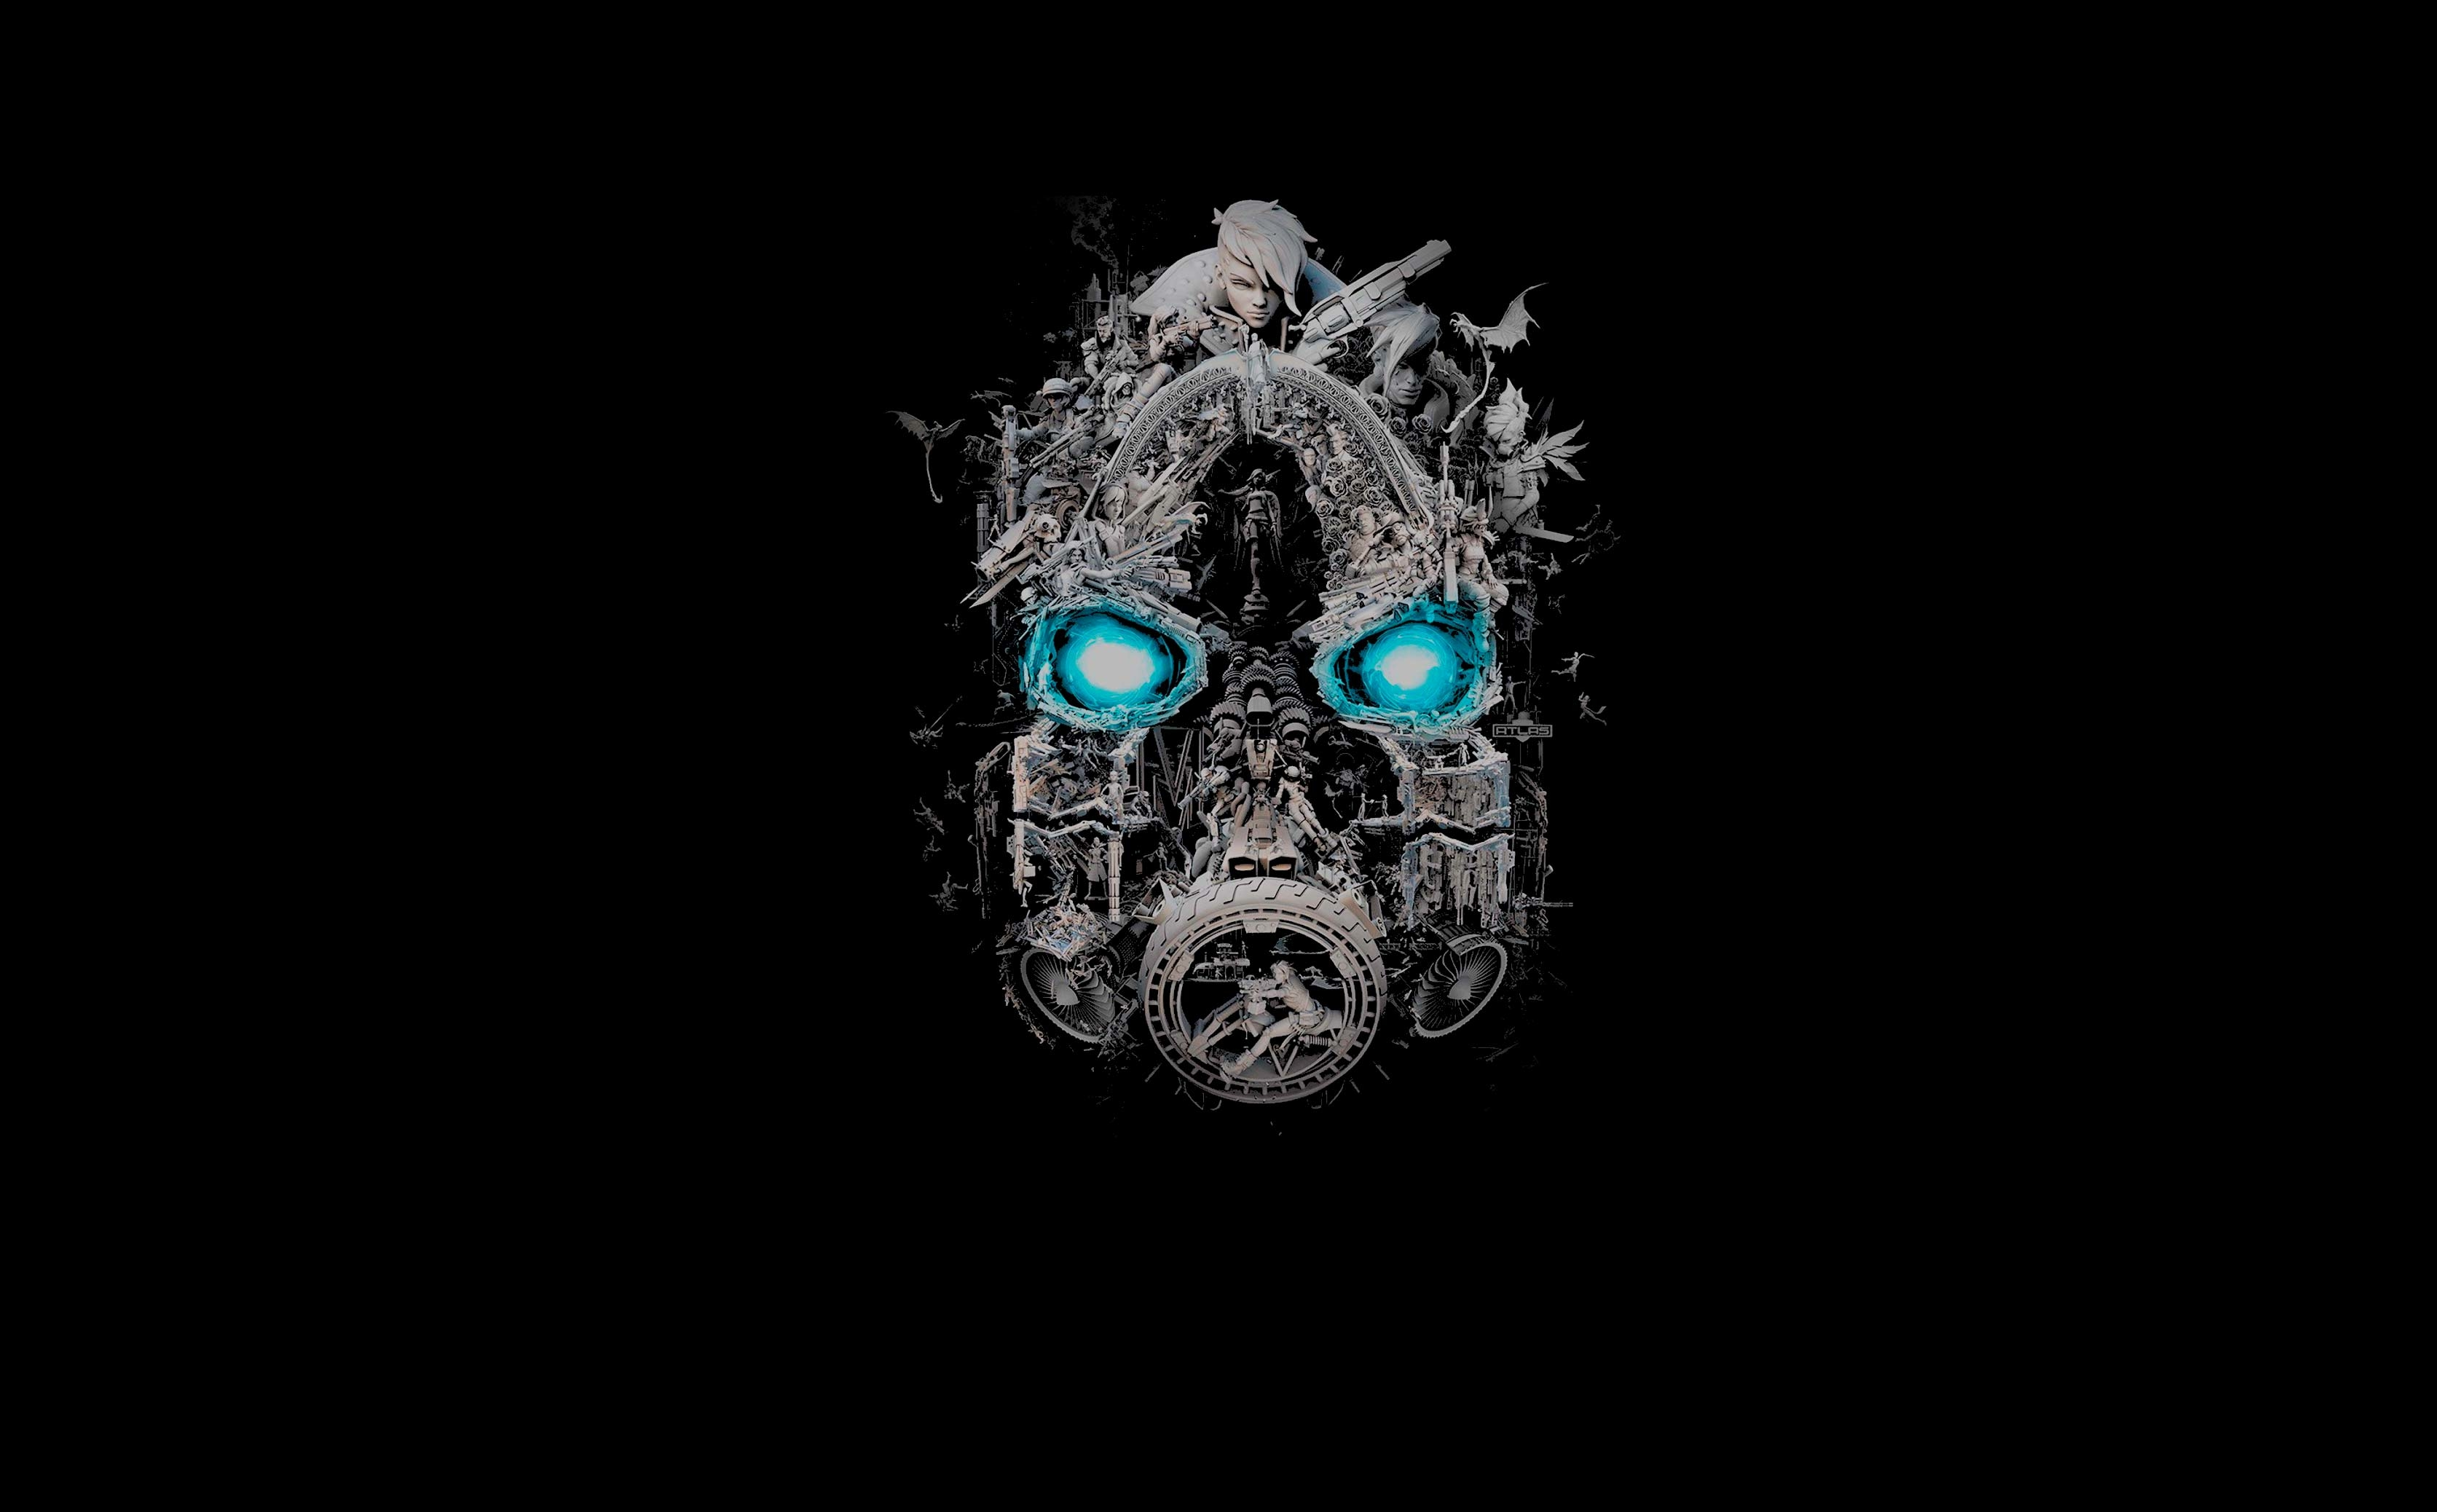 Free Download Borderlands 3 Mask Of Mayhem Wallpaper Hd